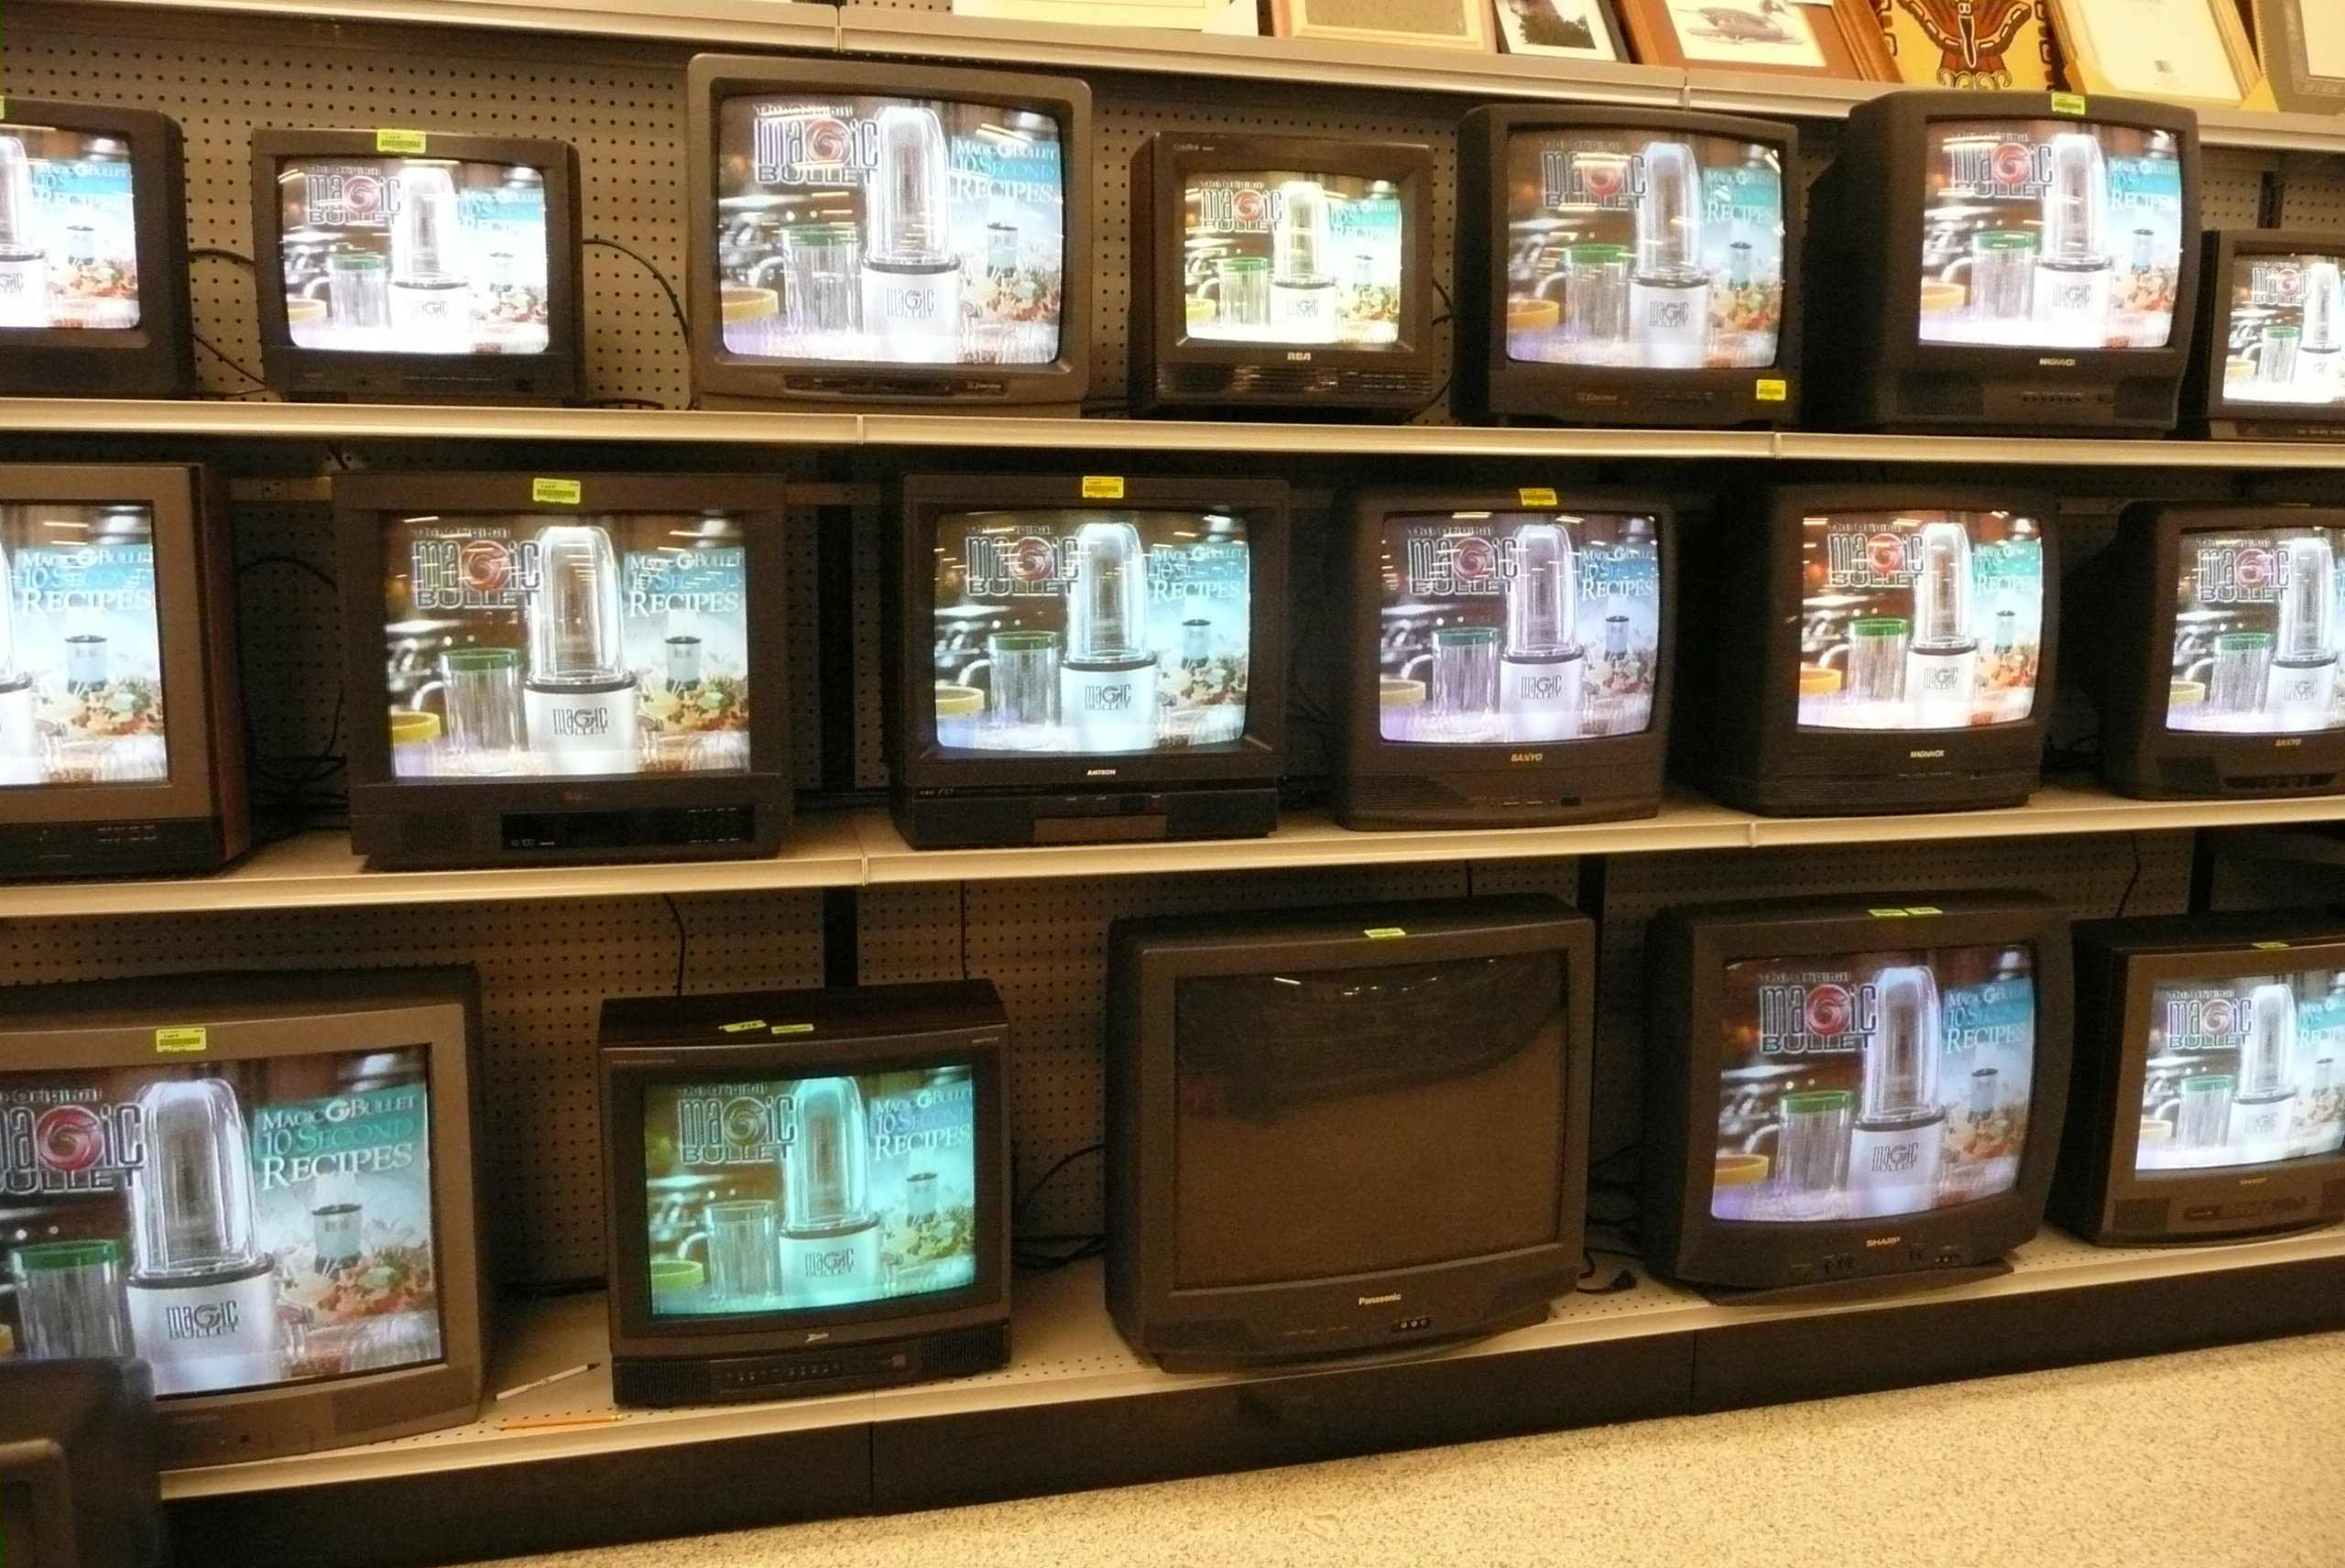 Tv Store Thrifting For Electronics At Goodwill